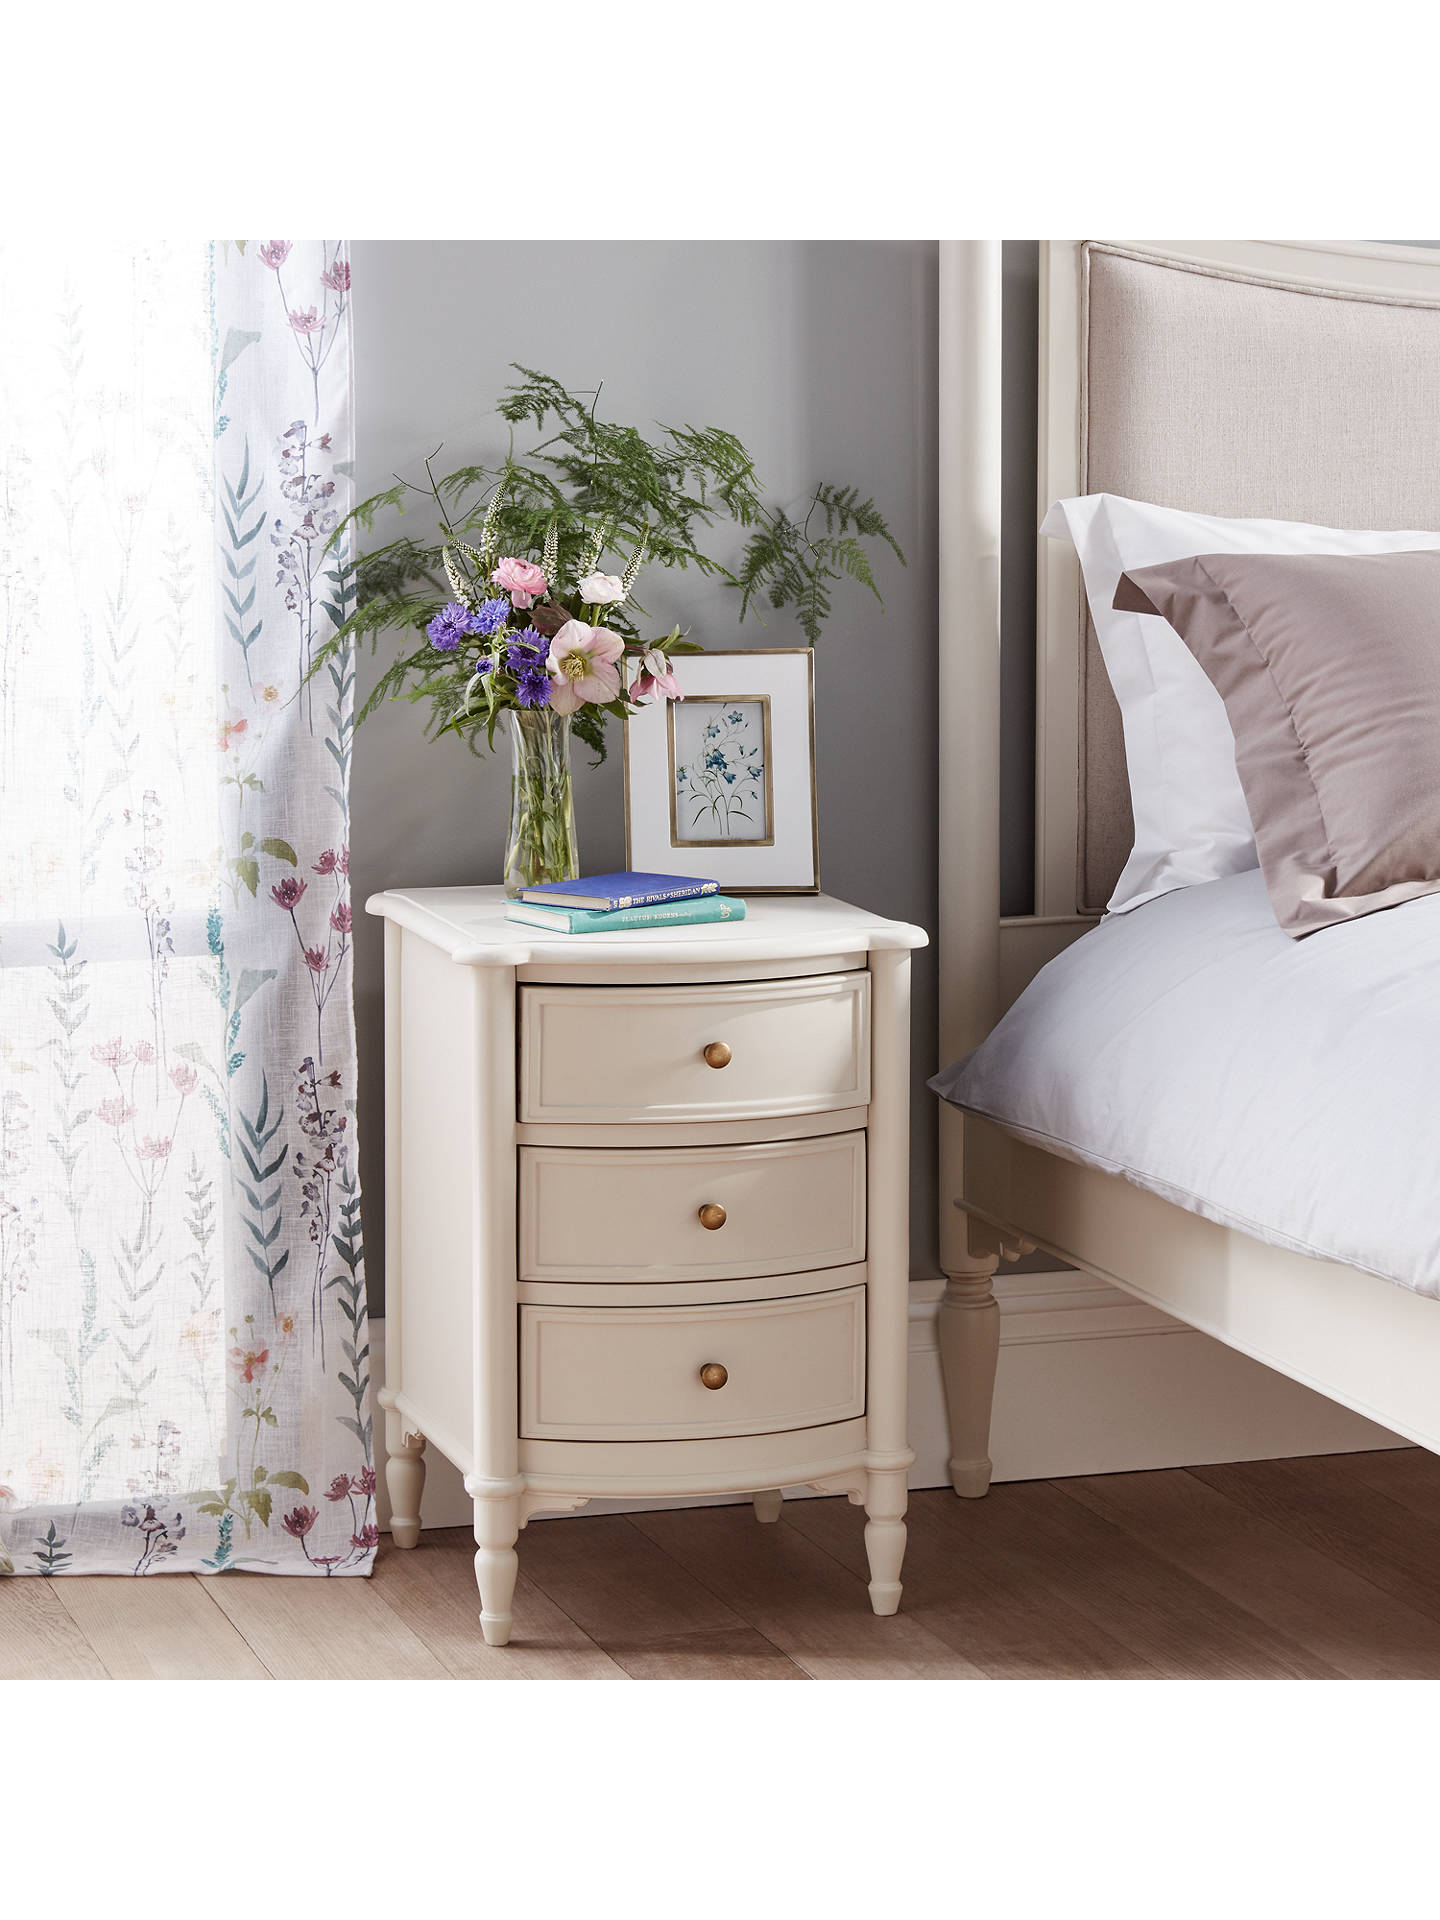 BuyJohn Lewis & Partners Ivybridge 3 Drawer Bedside Table Online at johnlewis.com